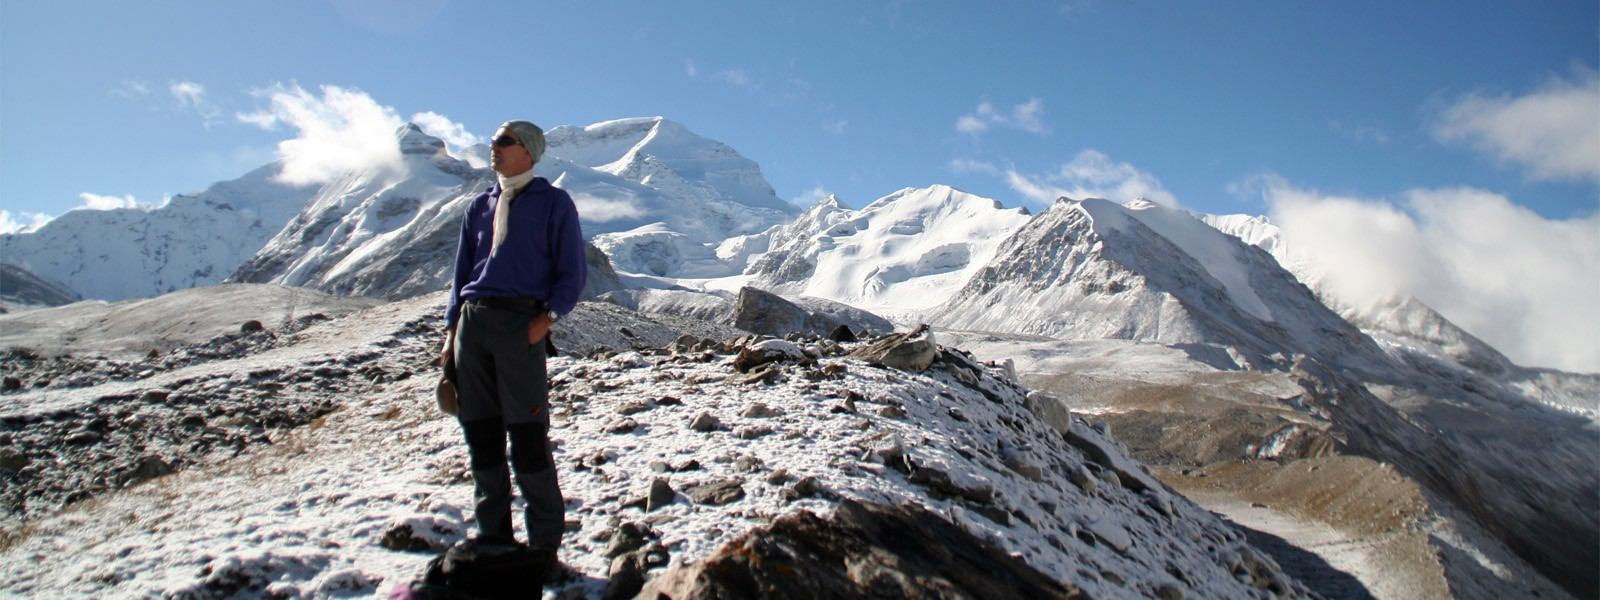 Expedition in Tibet, Cho Oyu Climbiong Route